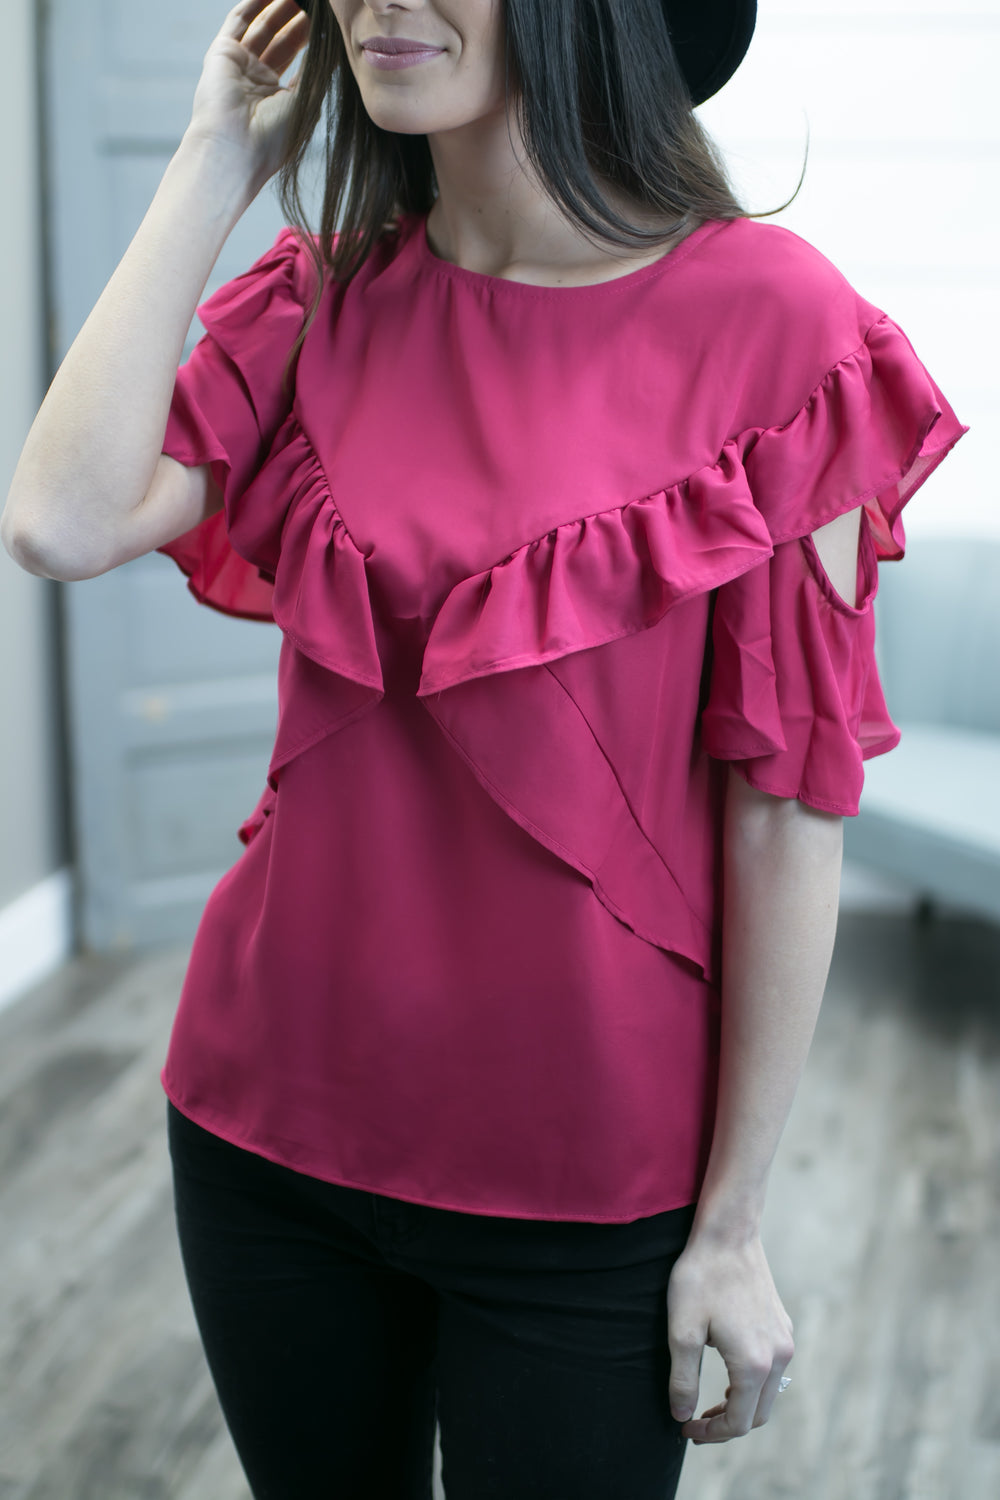 This Ones A Heartbreaker Top - Fuchsia